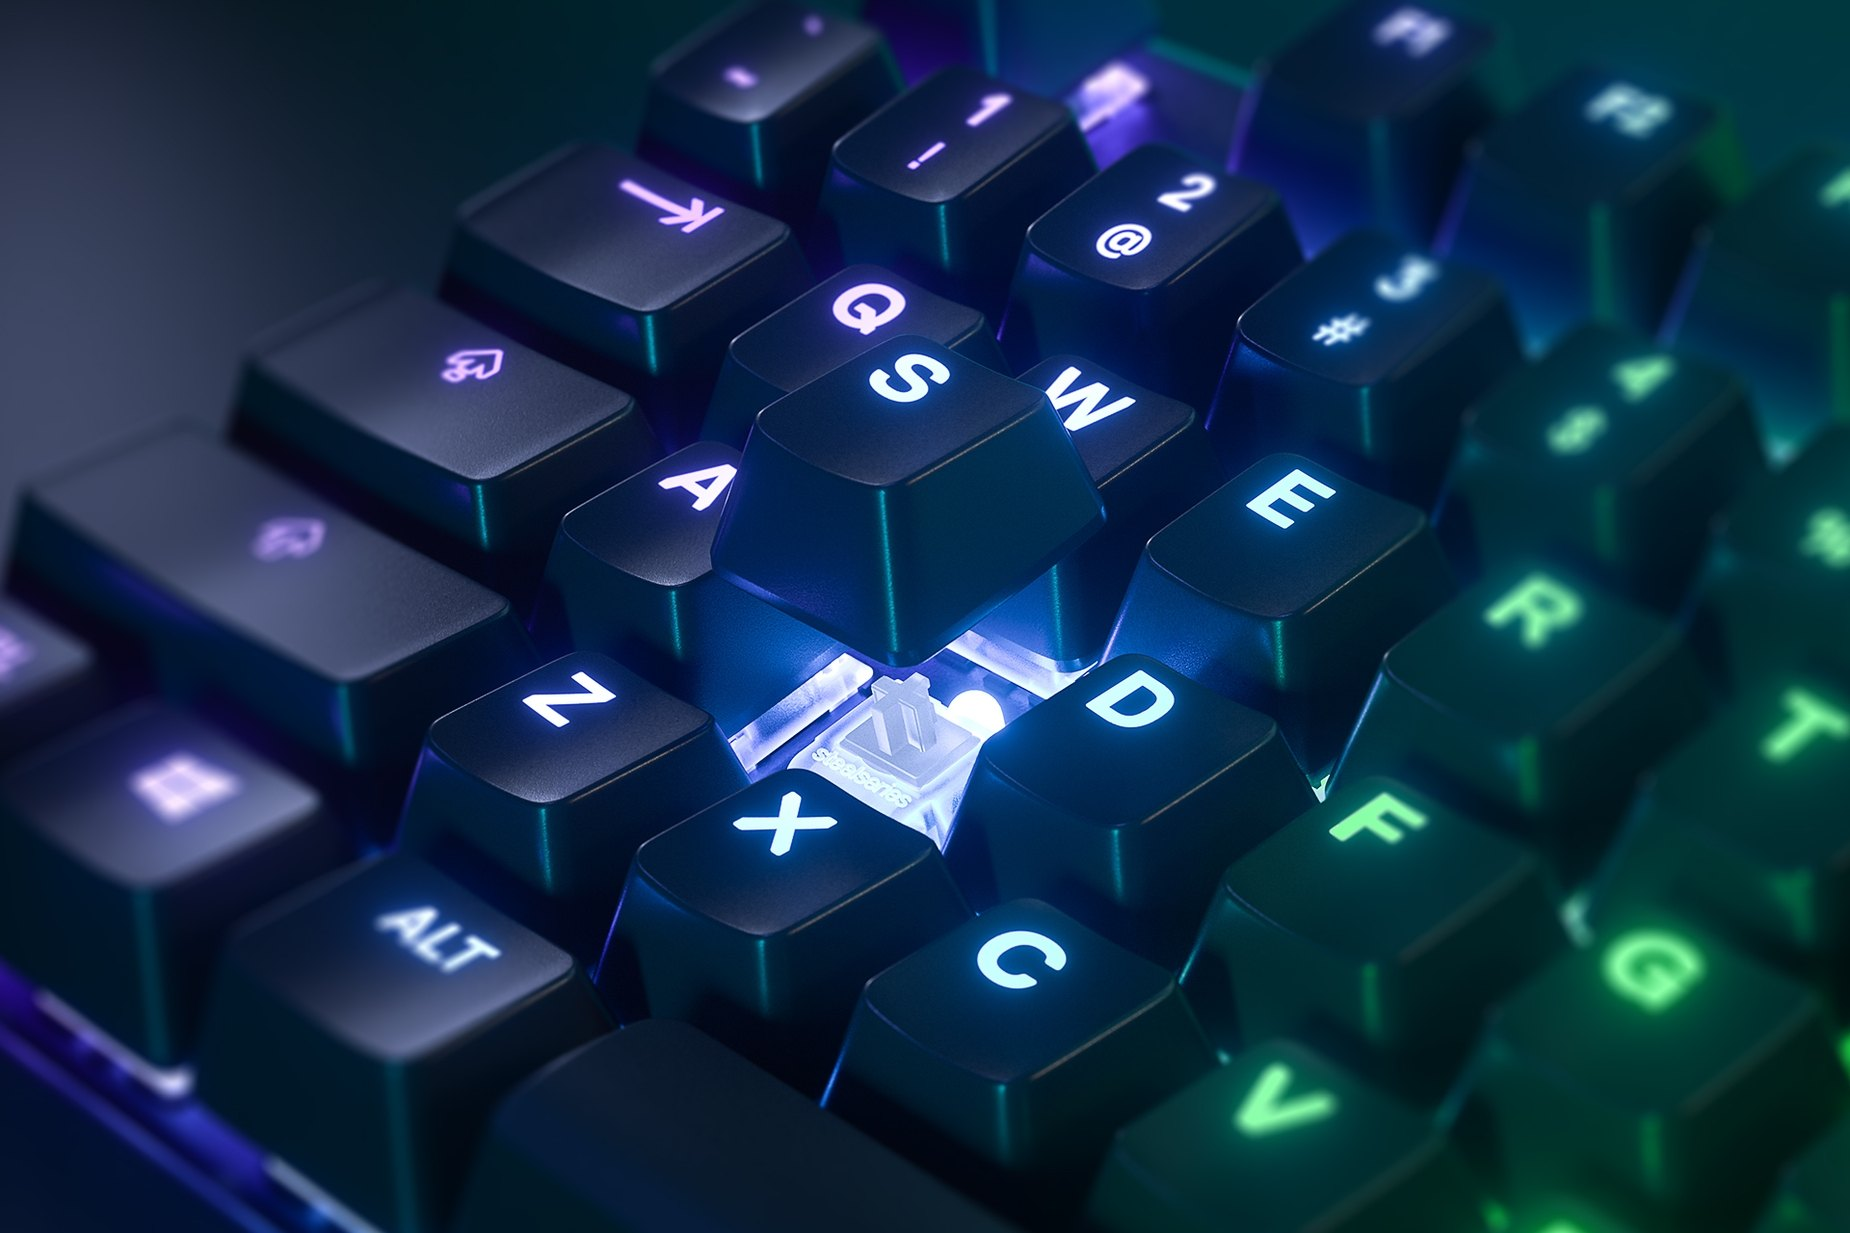 Zoomed in view of a single key on the US English - Apex Pro TKL gaming keyboard, the key is raised up to show the SteelSeries OmniPoint Adjustable Mechanical Switch underneath